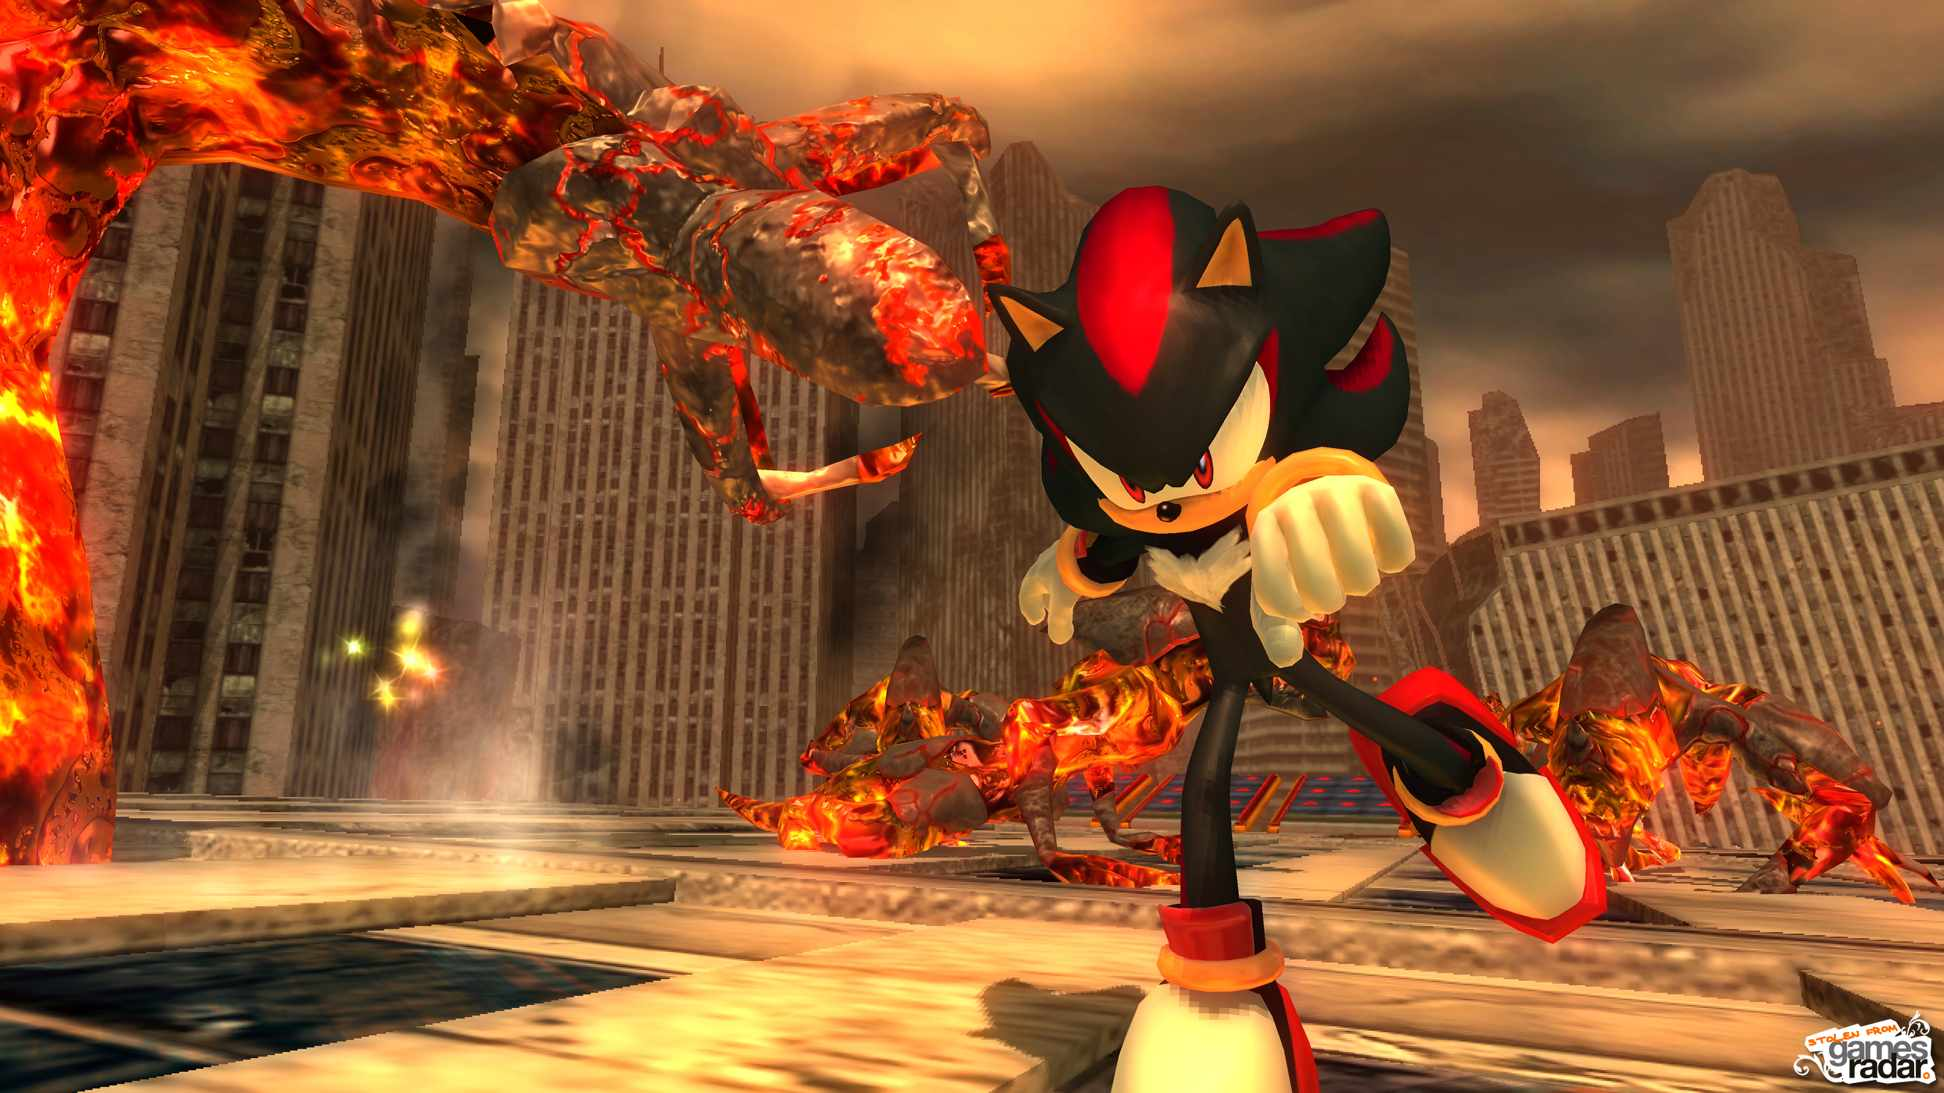 Screenshot Image Sonic The Hedgehog 2006 Mod Db